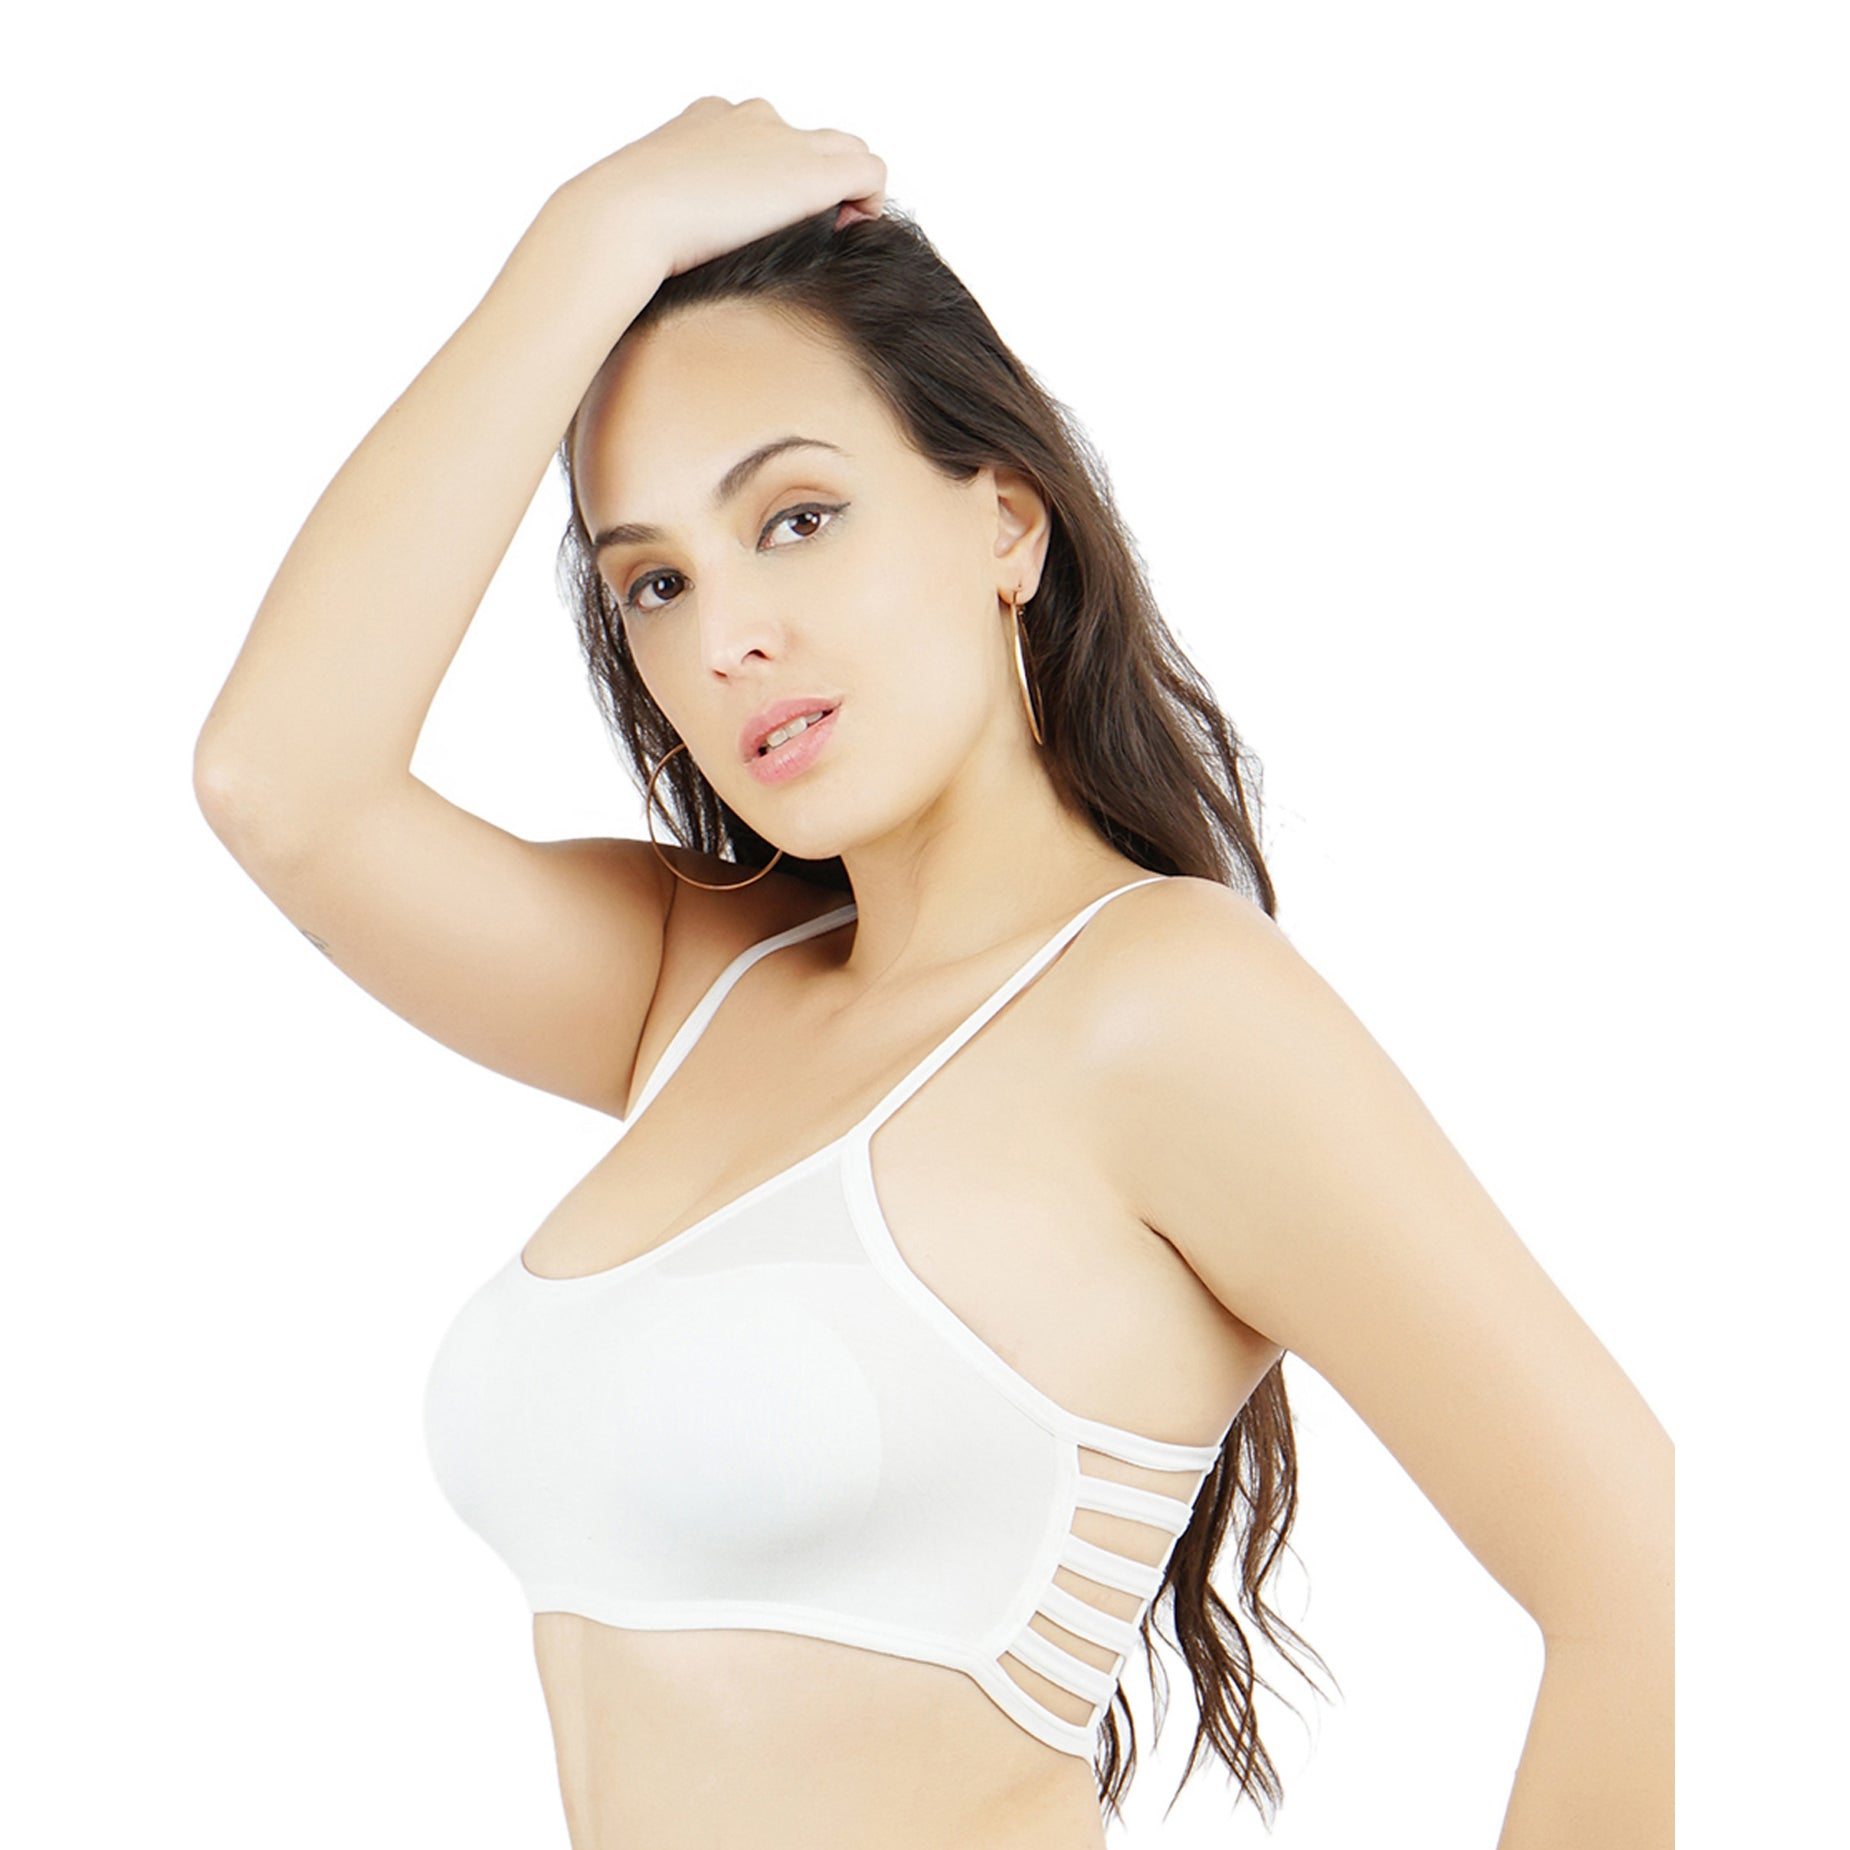 Ficuster Stretchable Cotton Sports White Bralette